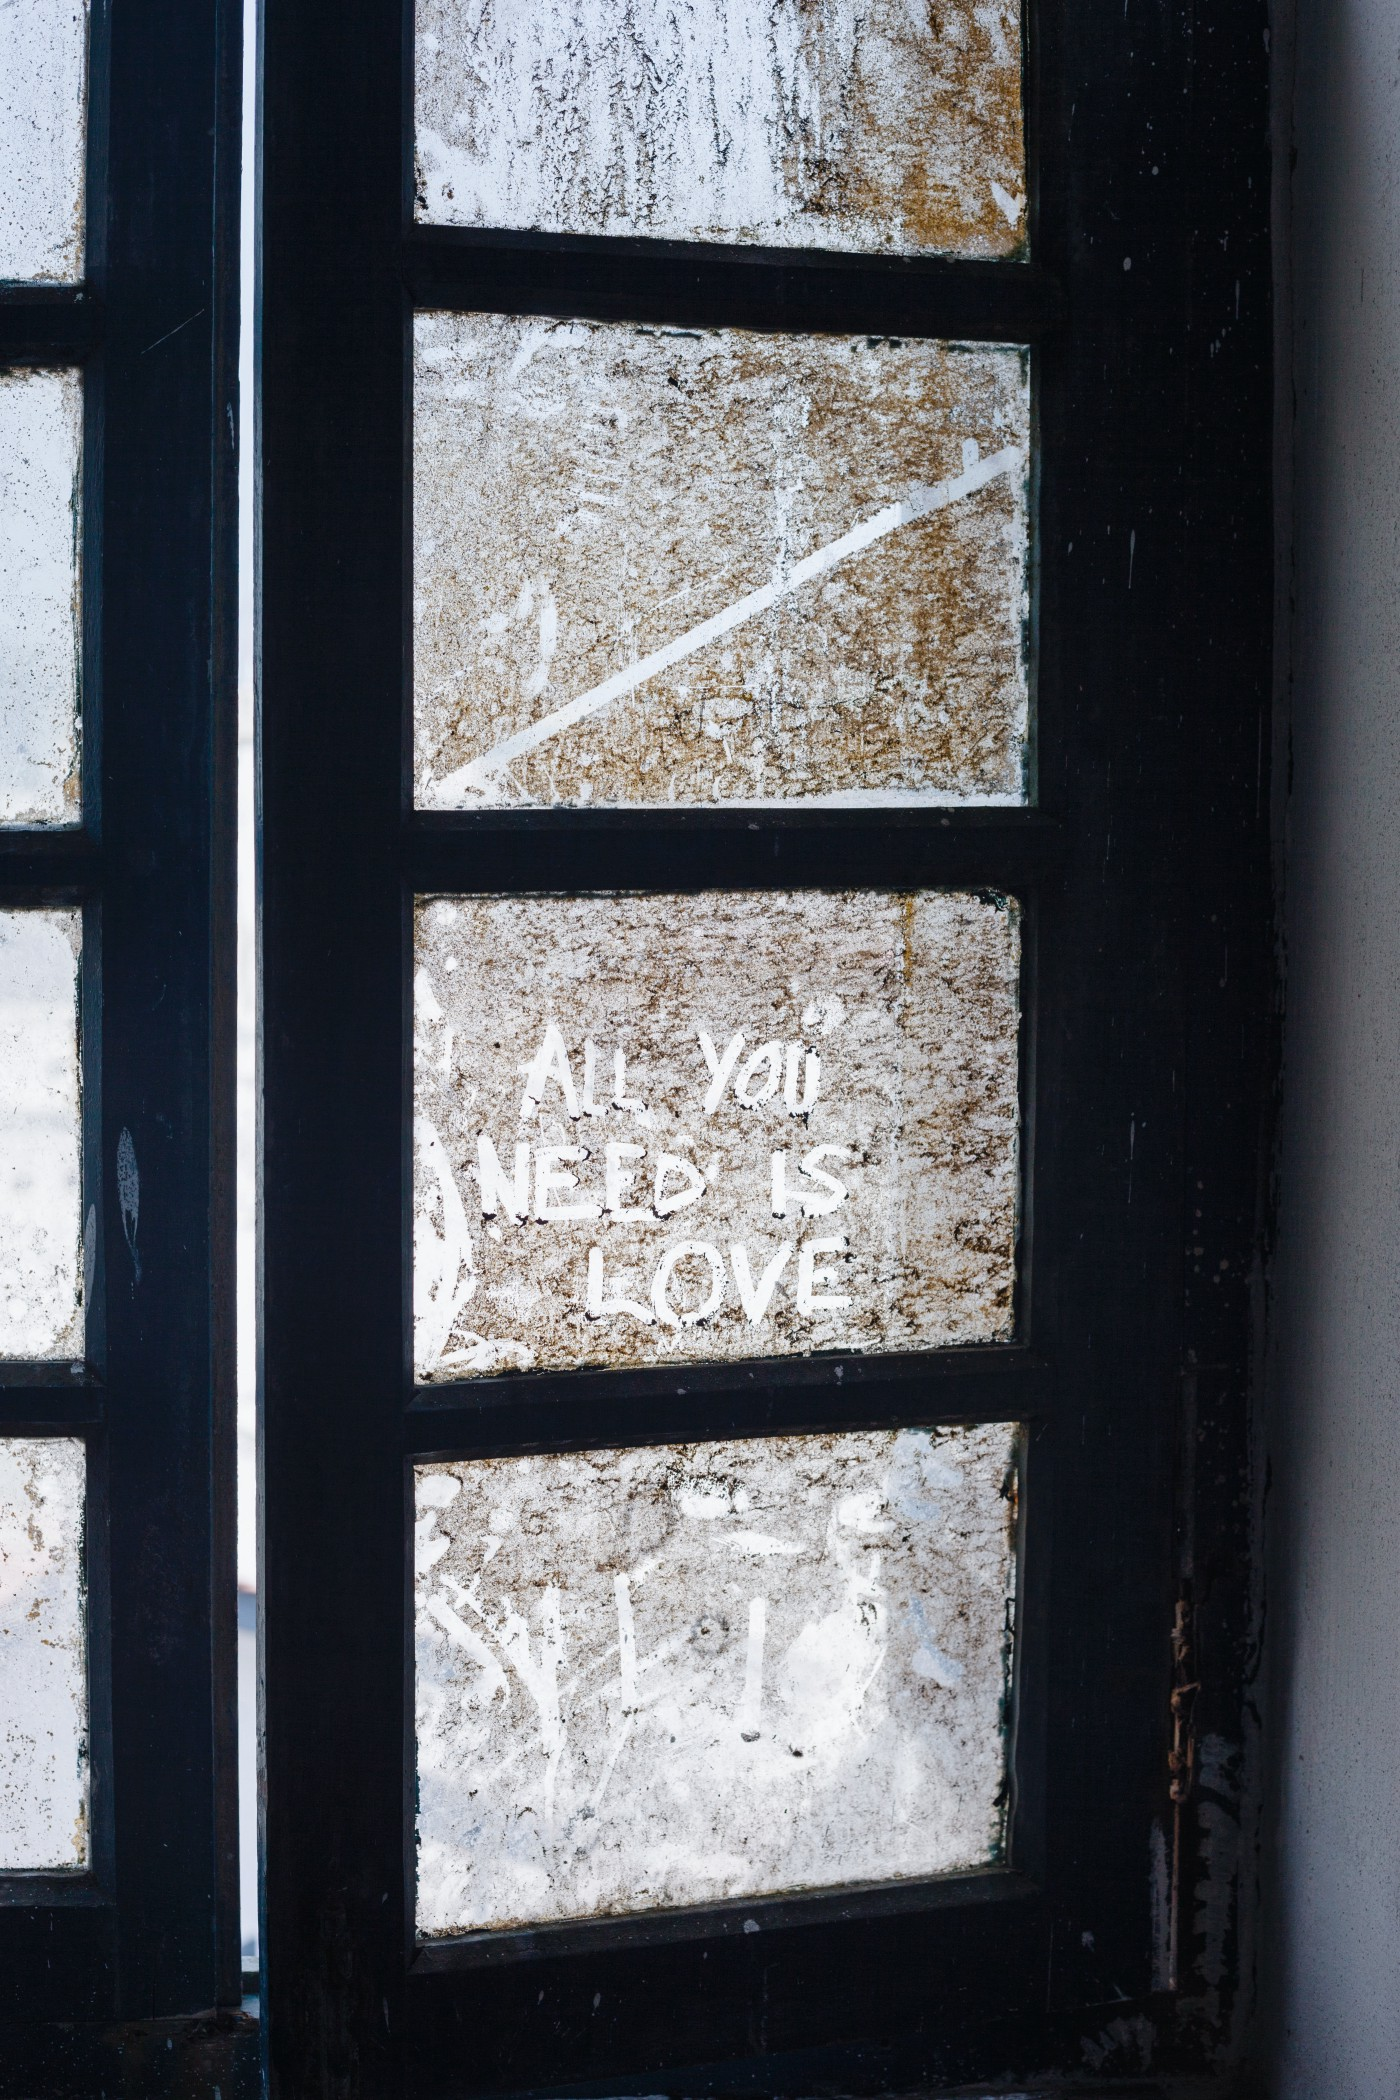 """A dirty window with """"All you need is love"""" written on it."""